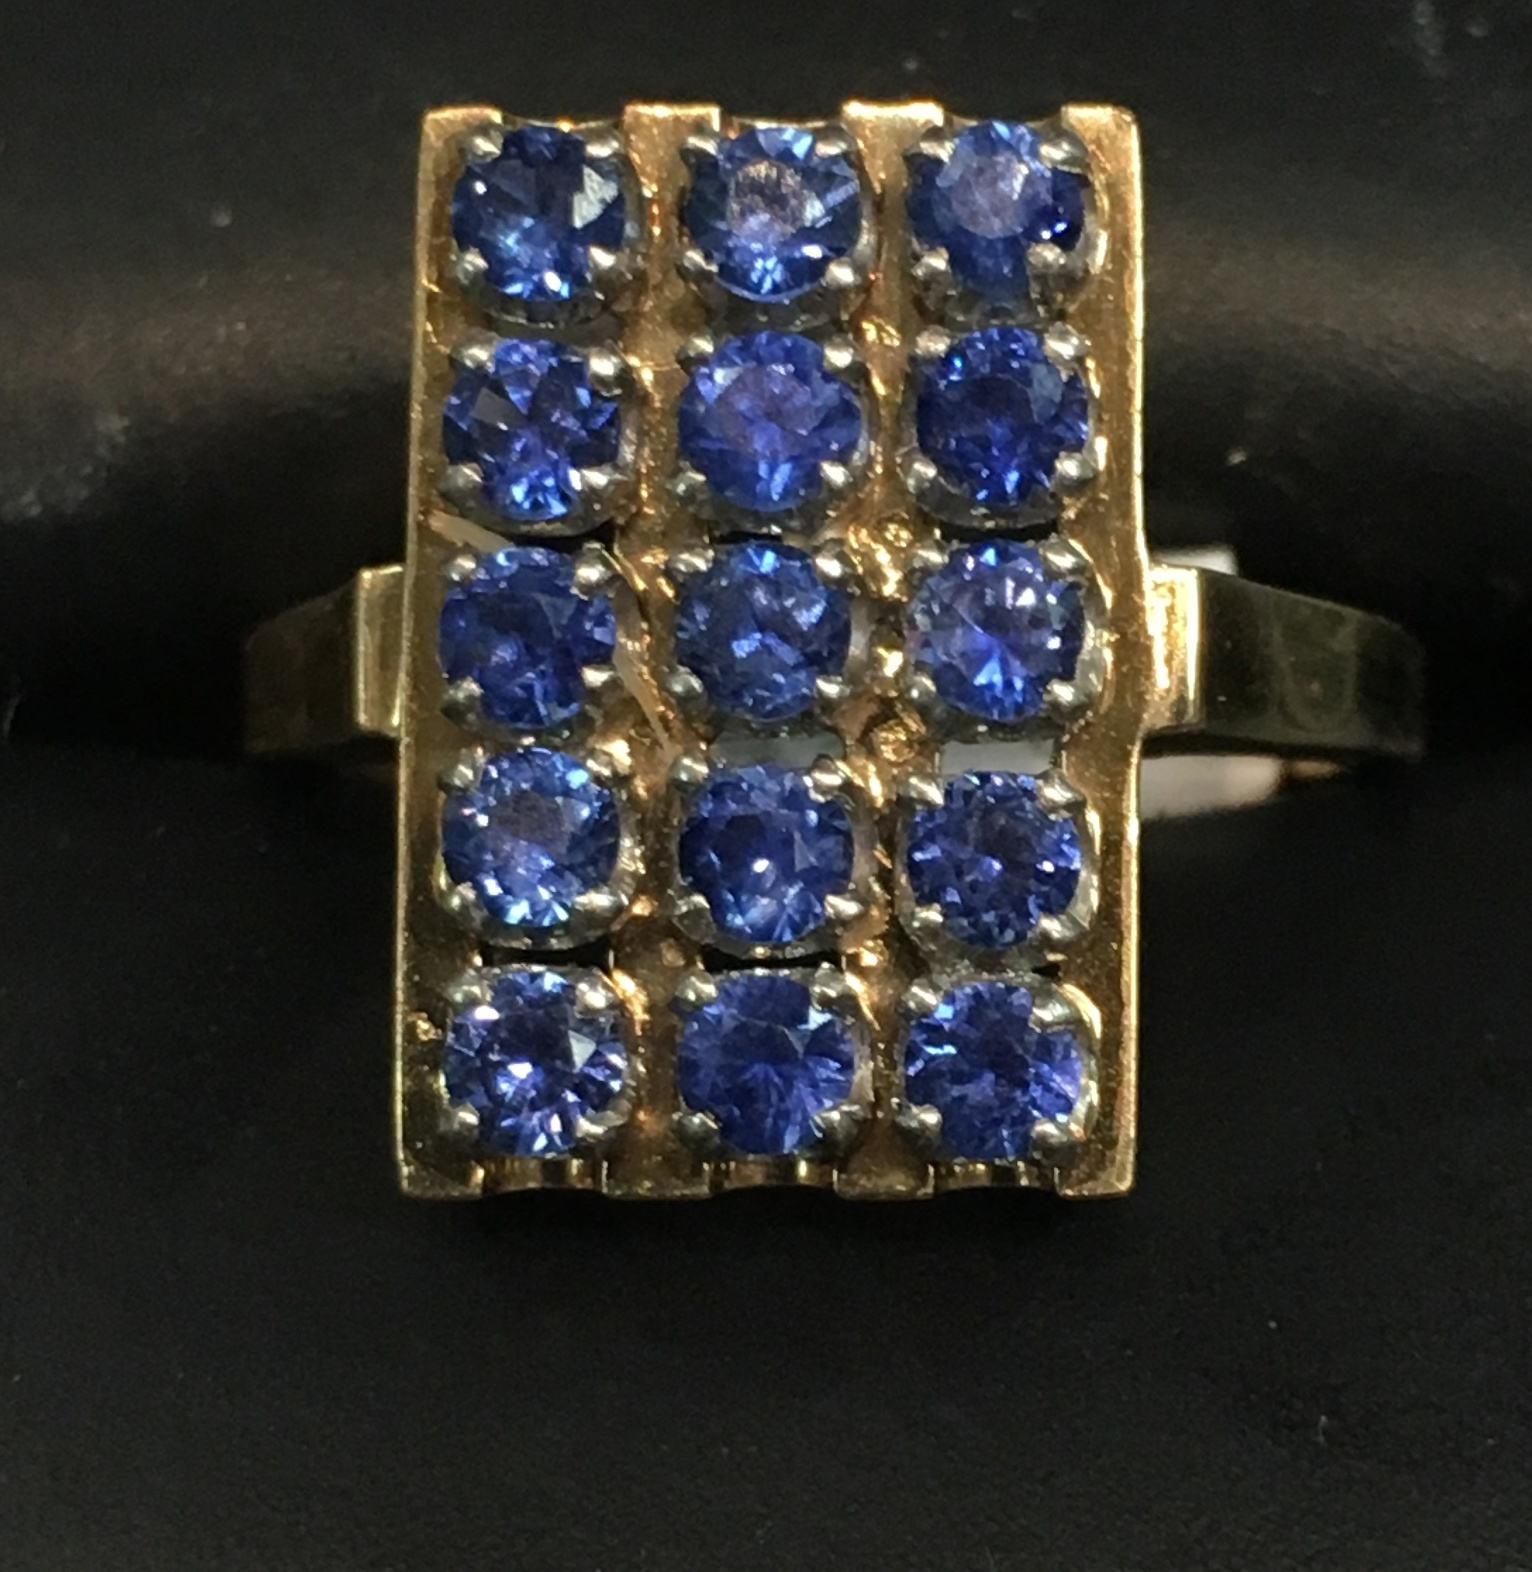 14KT YELLOW GOLD RECTANGLE SHAPE SETTING WITH TINY BLUE STONES RING